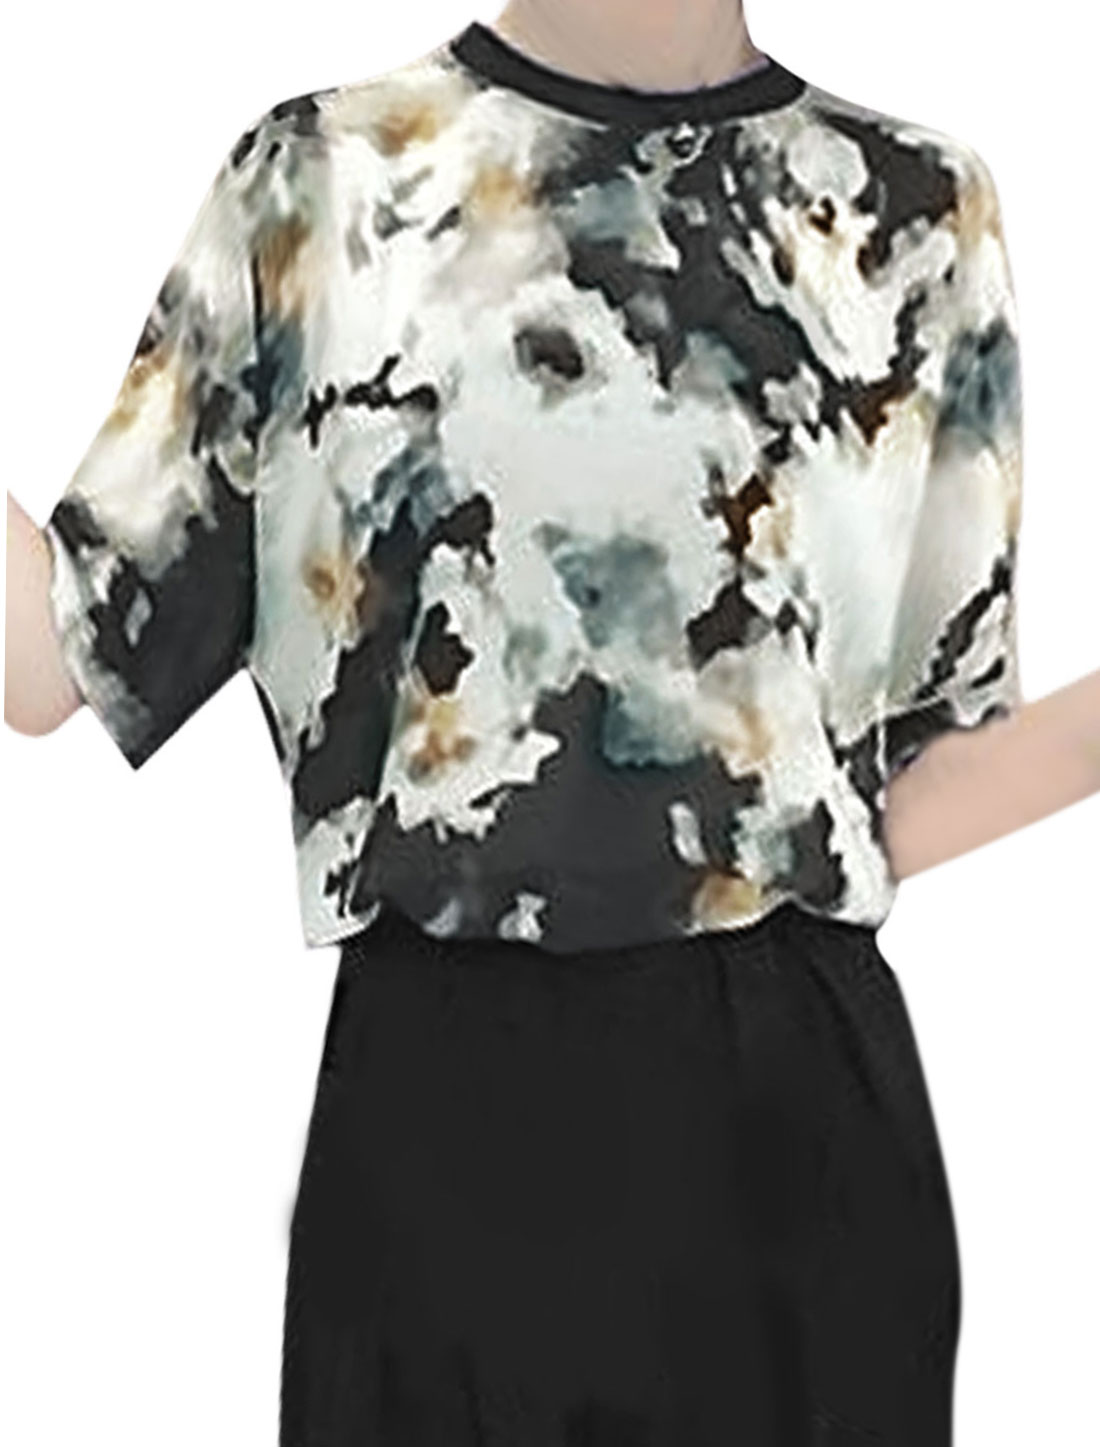 Women Short Sleeve Novelty Prints Retro Chiffon Tops Black White S